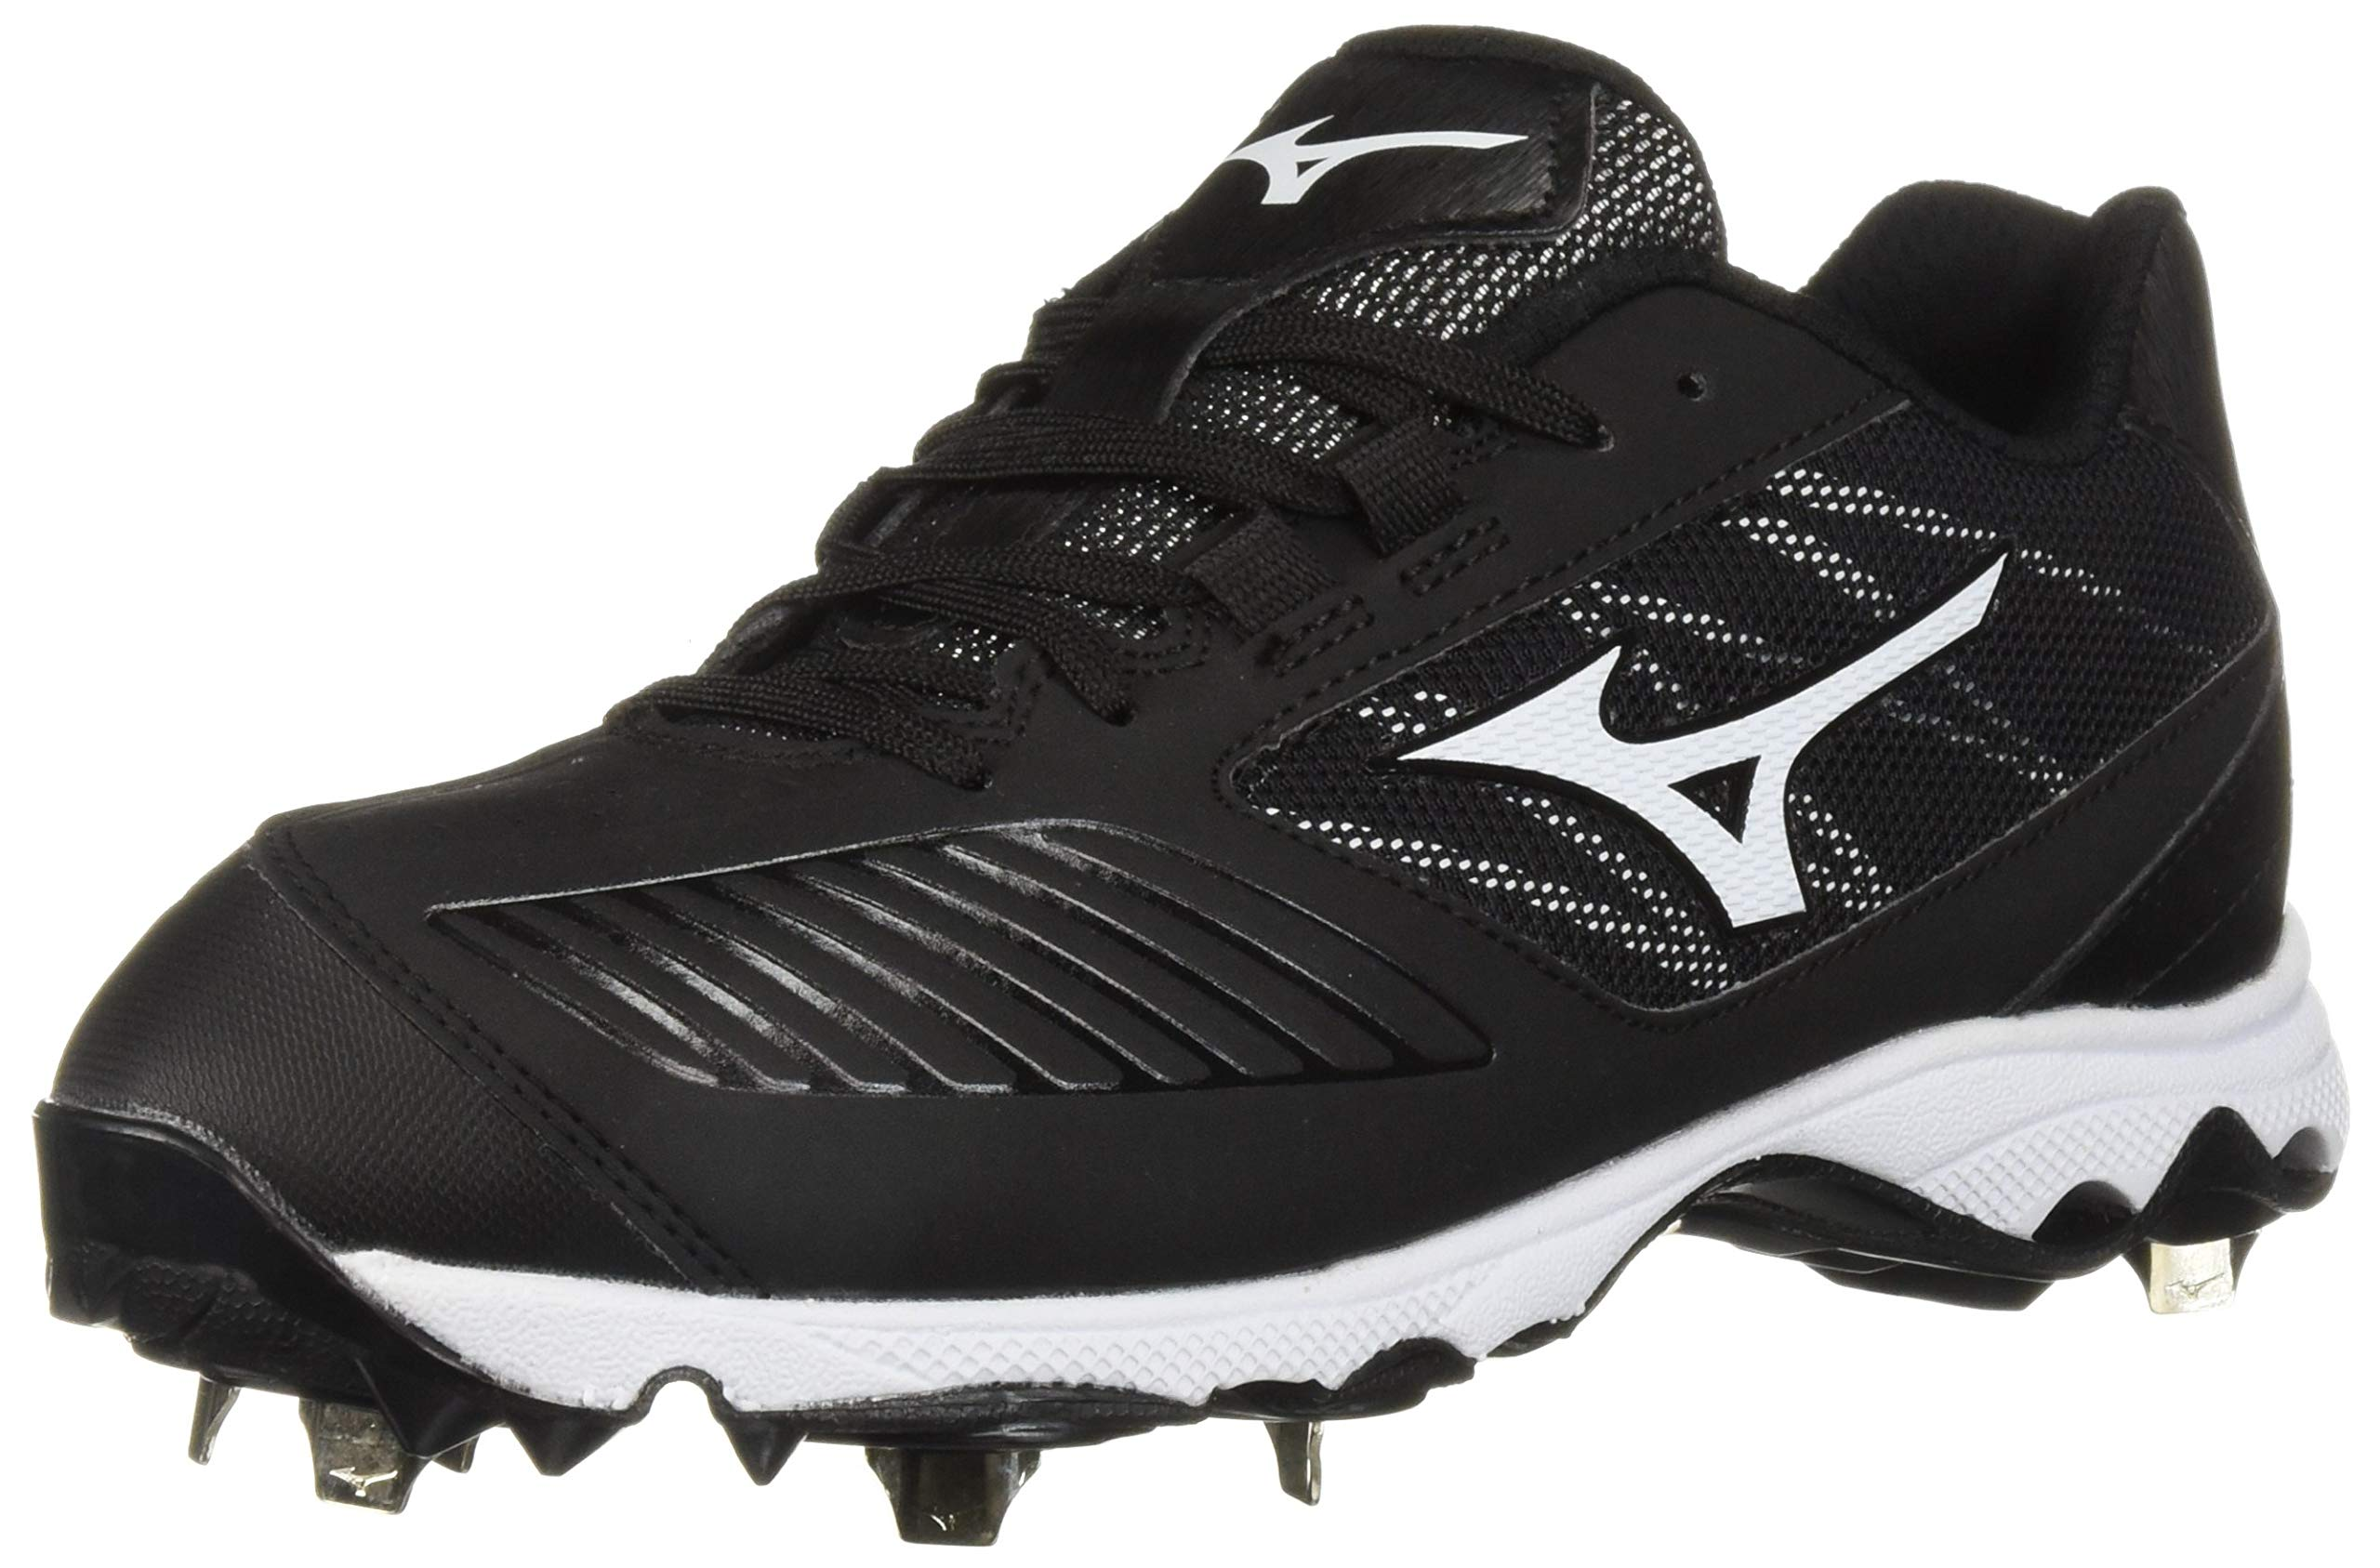 9-SPIKE ADVANCED SWEEP 4 11.5 Black/White by Mizuno